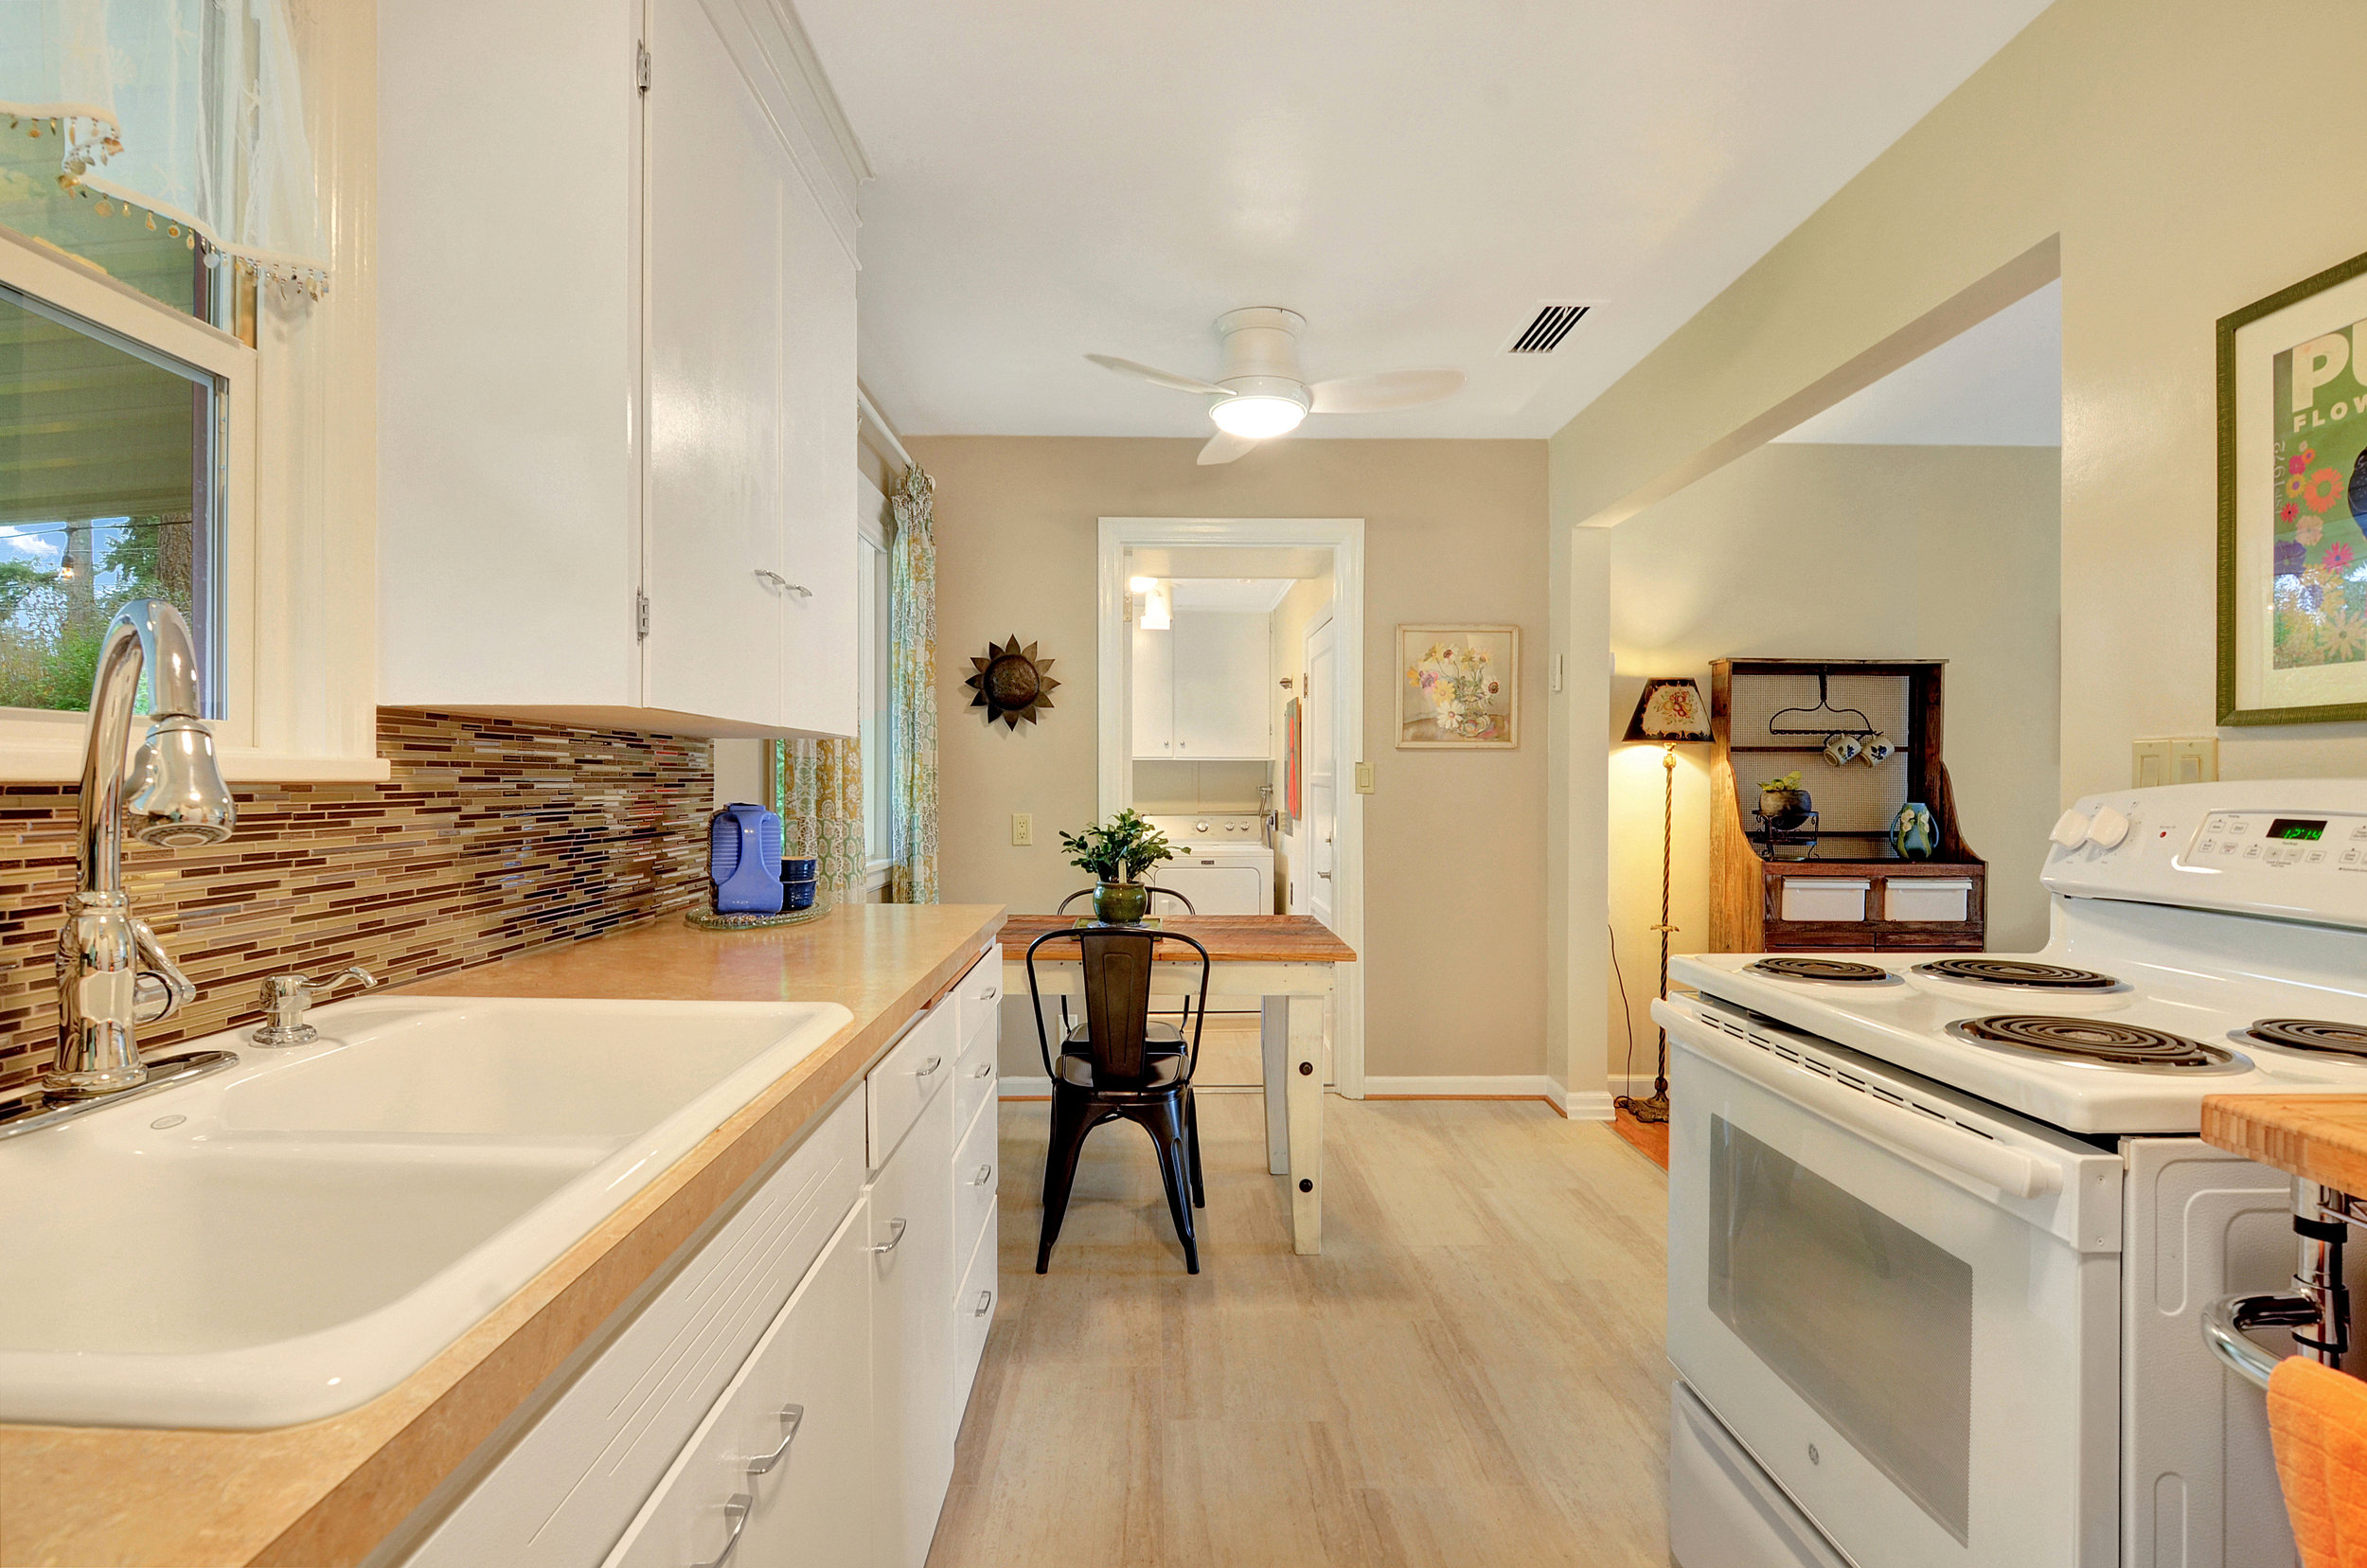 The updated kitchen is sparkling and ready for you to cook your favorite meals.